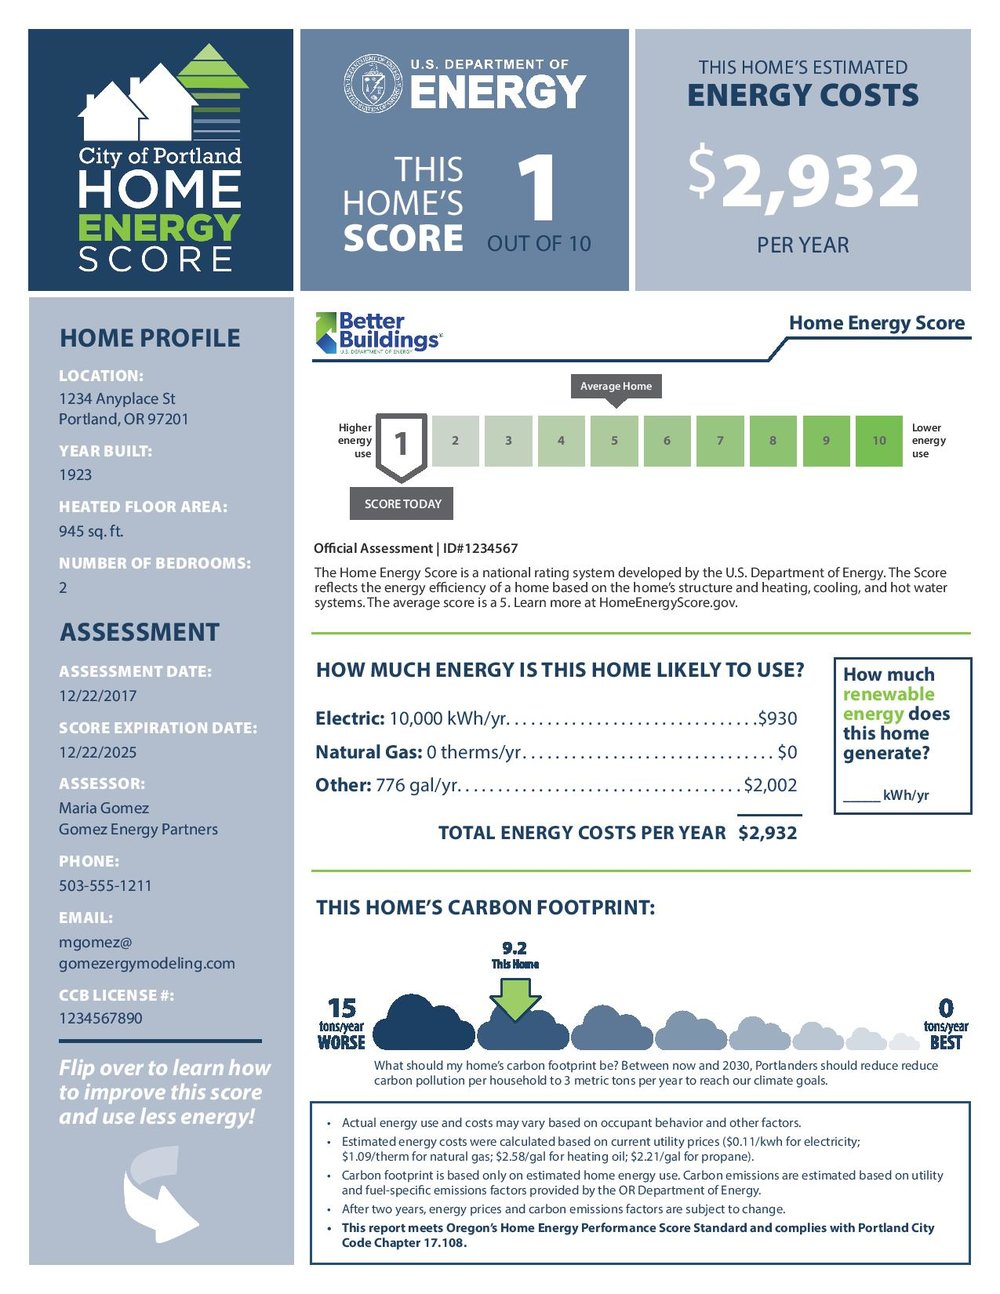 Sample Portland Home Energy Report-v2-171120-page-001.jpg